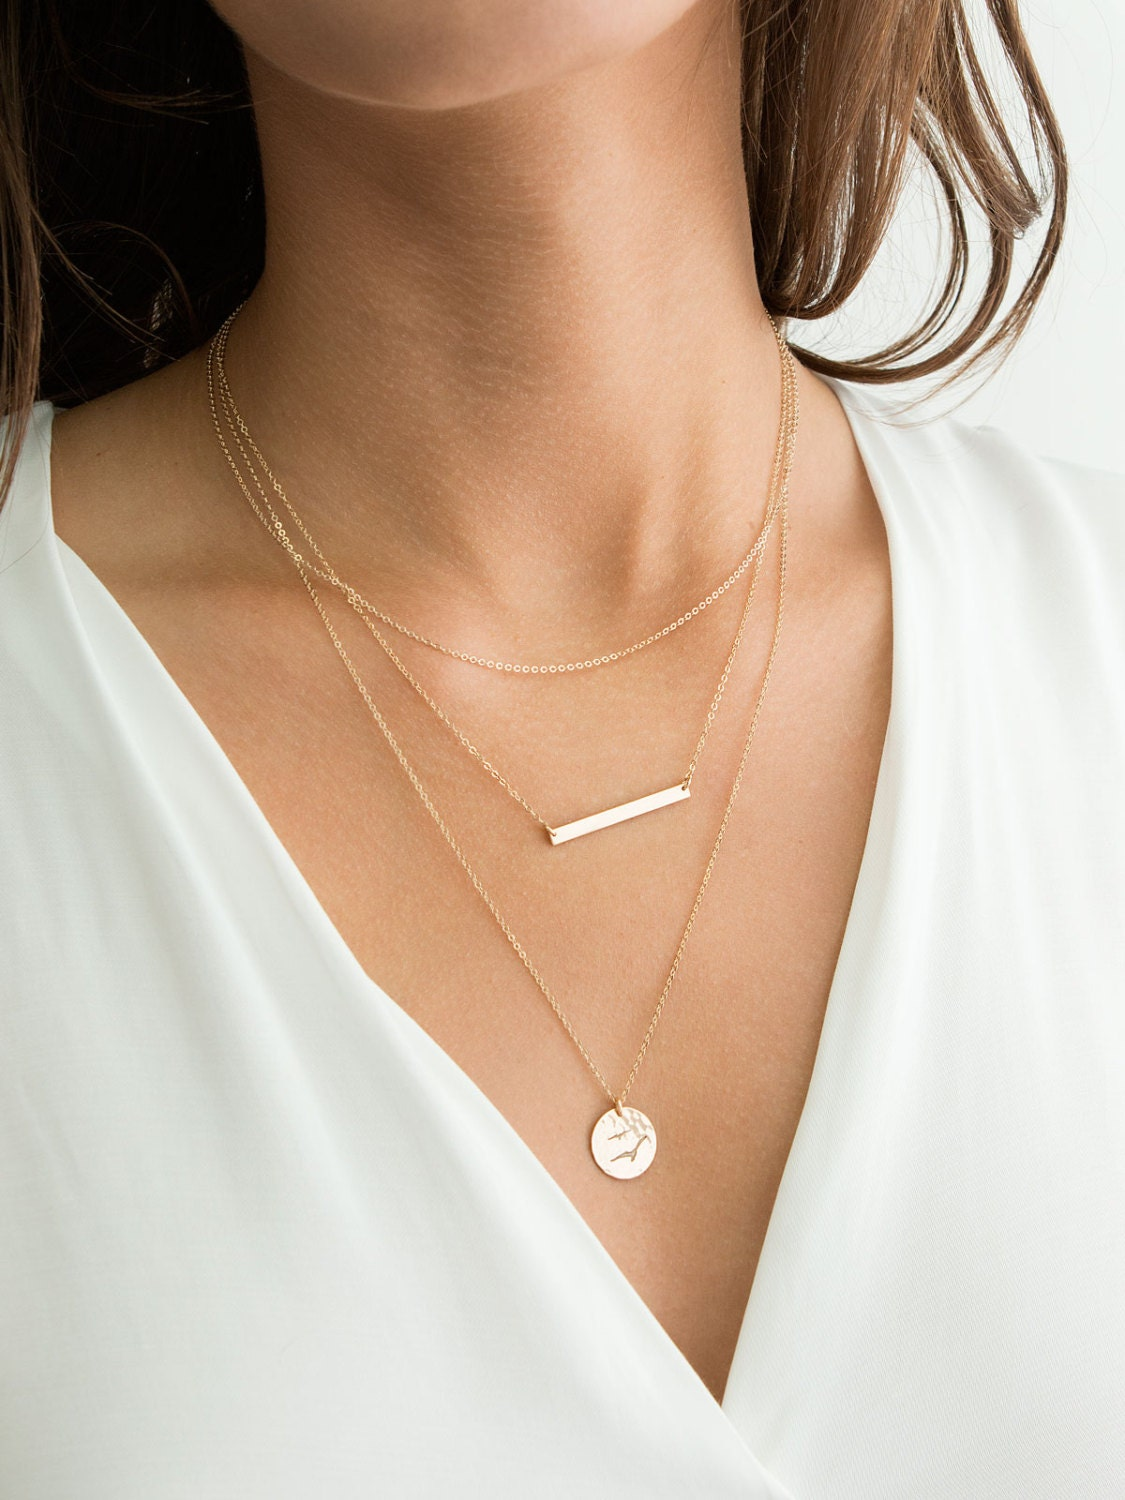 Set 949 Bar Necklace Amp Simple Dainty Layering Necklaces